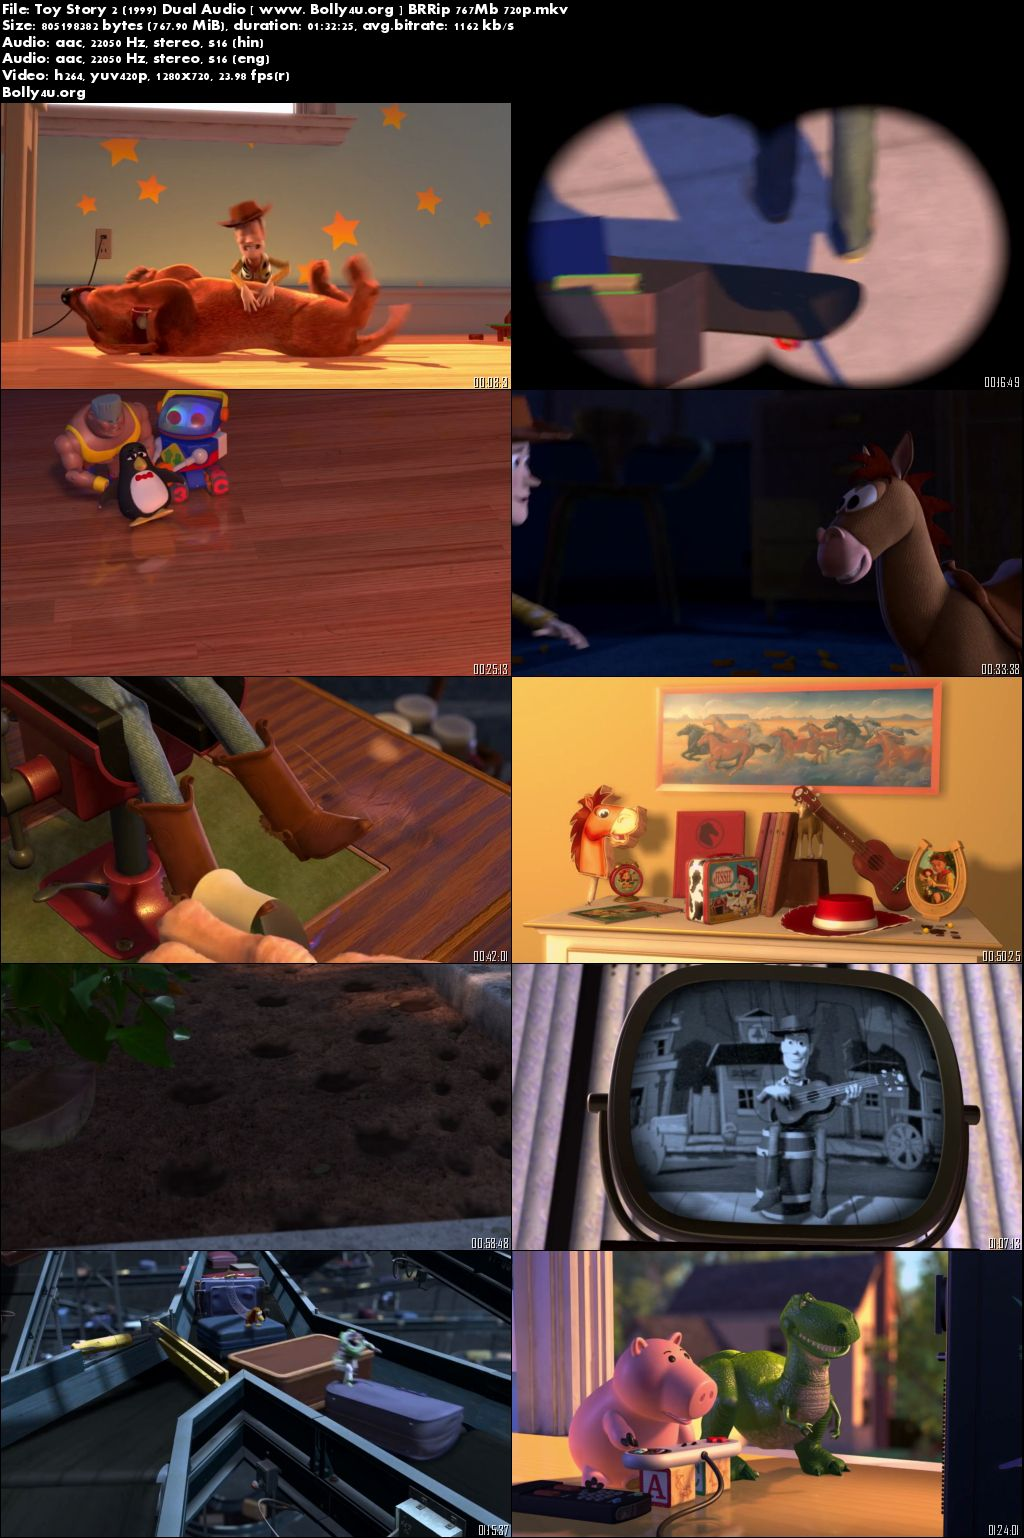 Toy Story 2 (1999) BRRip 300MB 480p Hindi Dual Audio Download